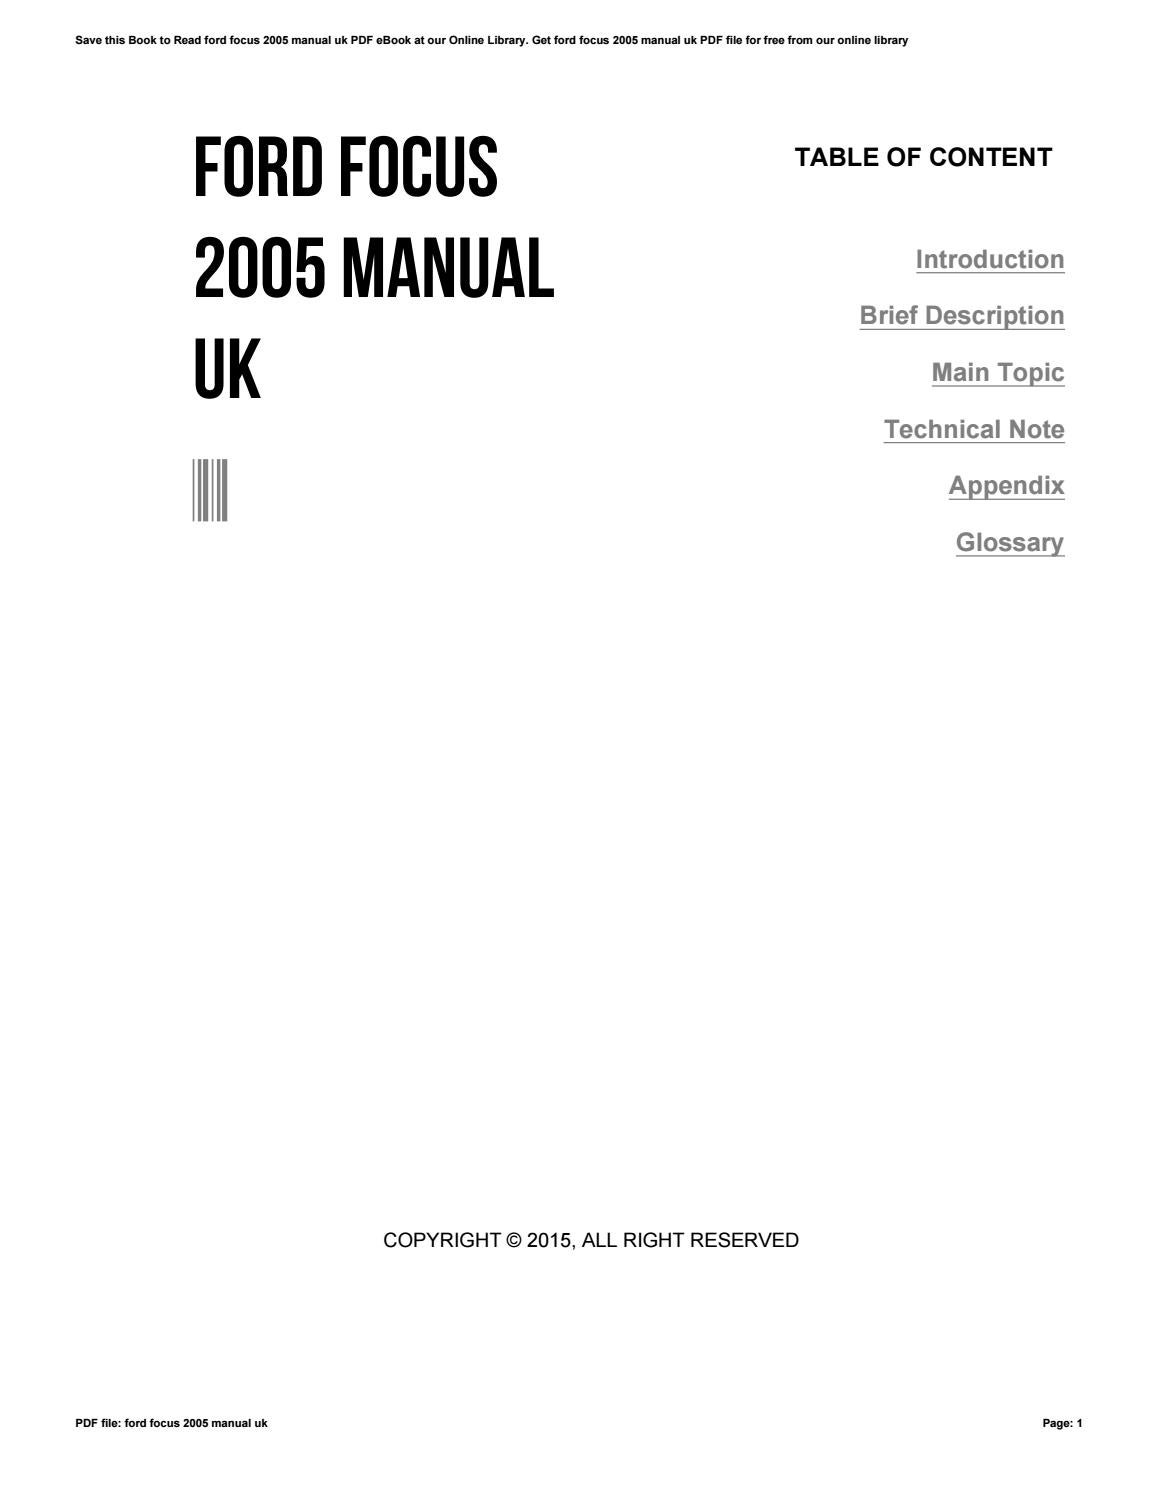 Https Post Ford Manual Uk 2018 12 02t025808 2007 Yamaha R1 Fuse Box Location Page 1